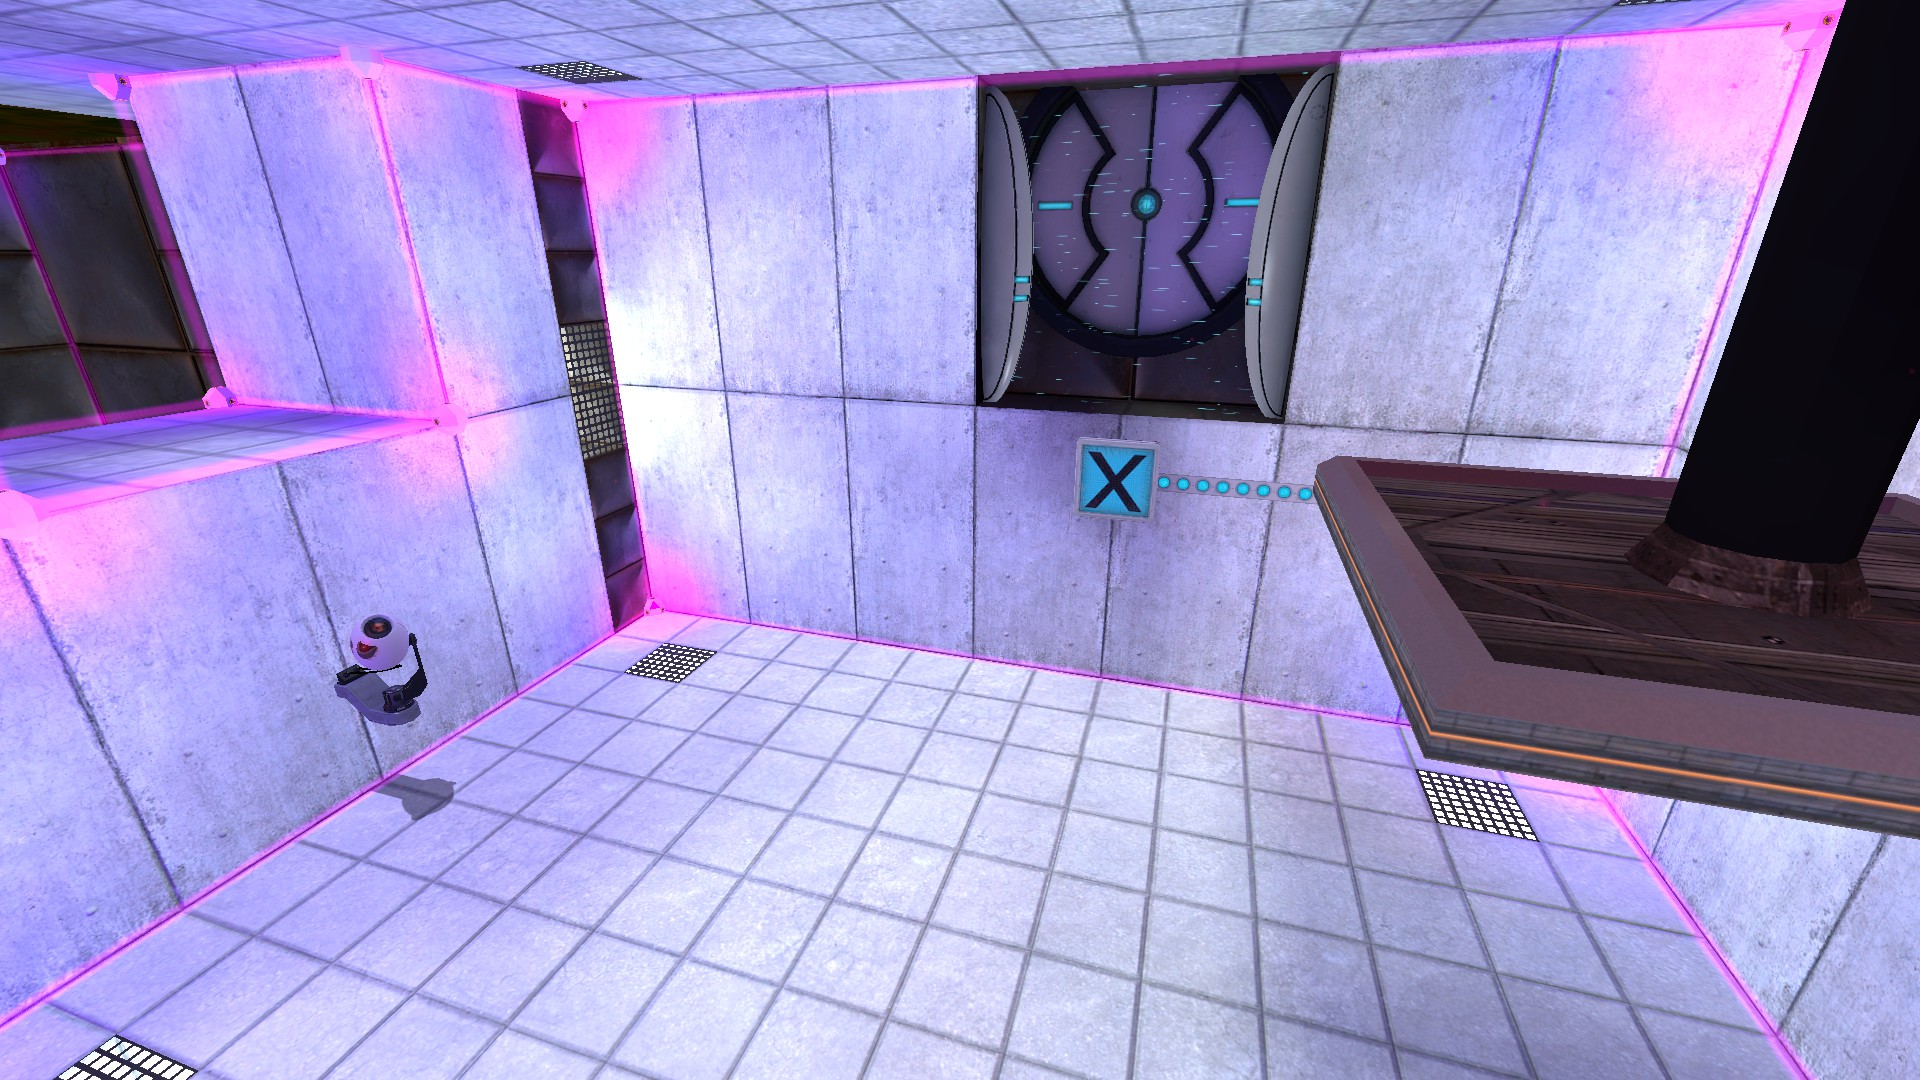 The second room is upside down and starts with a button on the right, the exit door in the middle, and a security camera on the right.